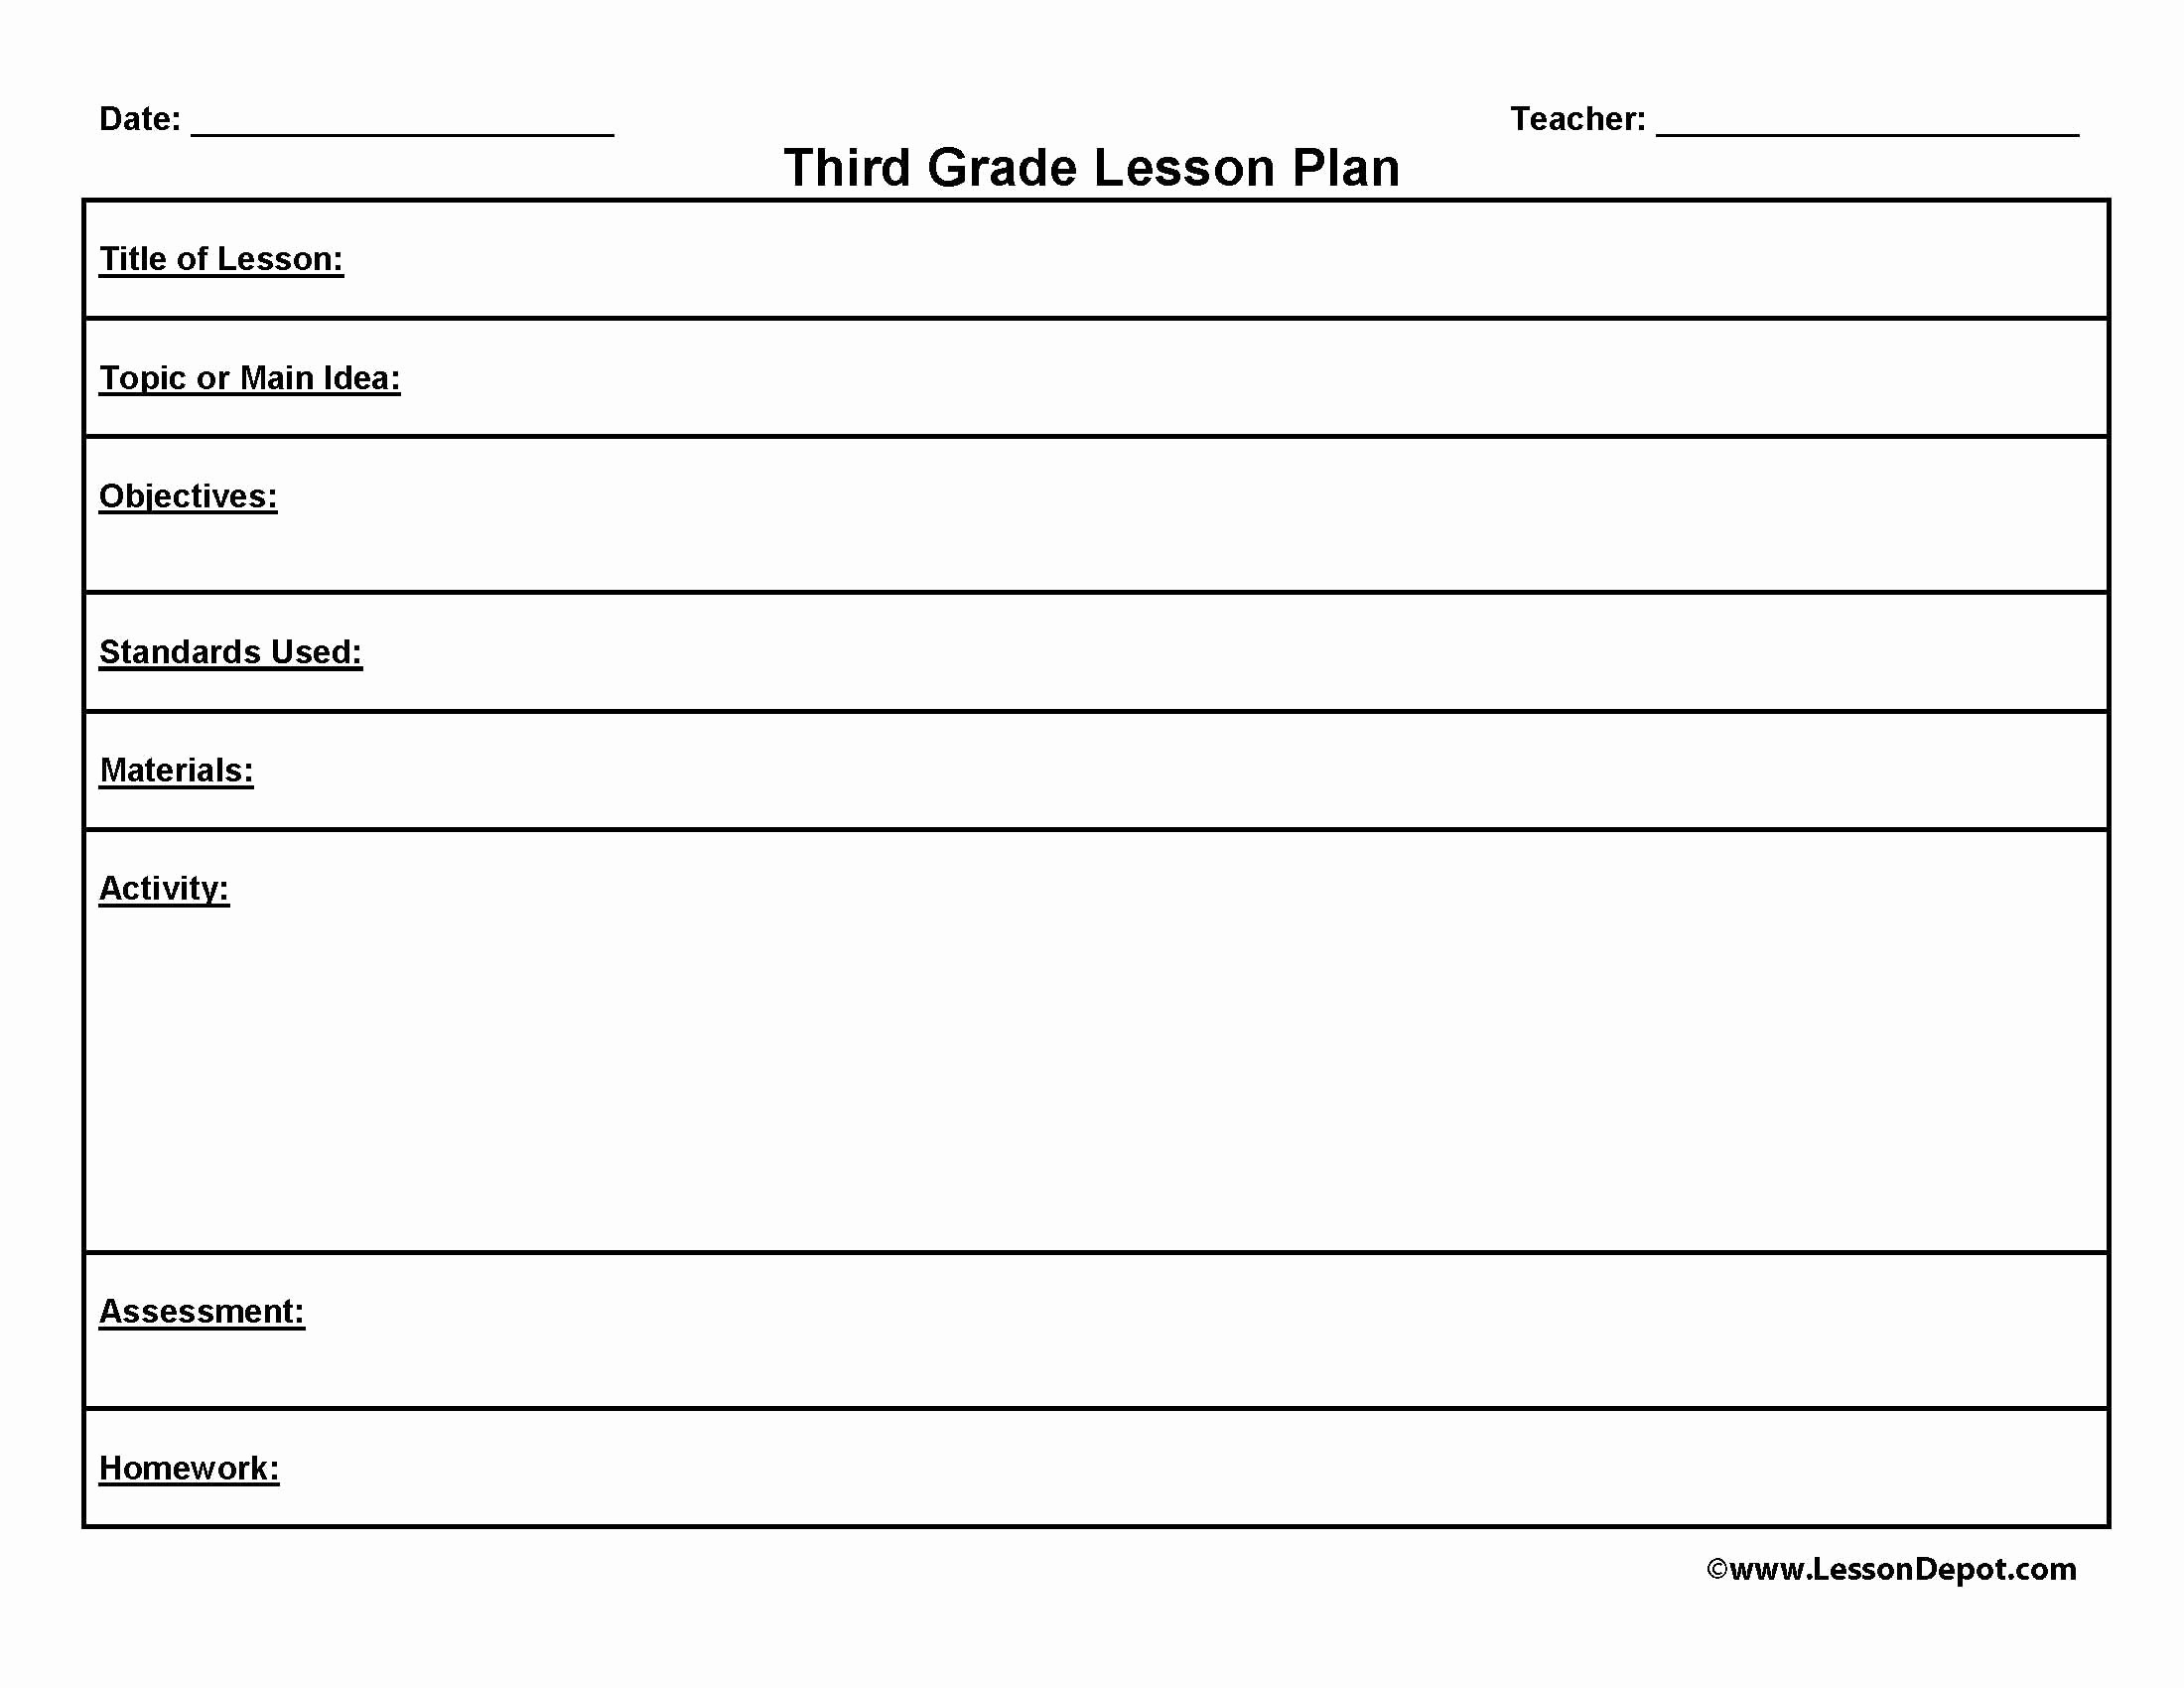 Elementary Lesson Plan Template Word Unique Elementary Lesson Plan Template Word Filename